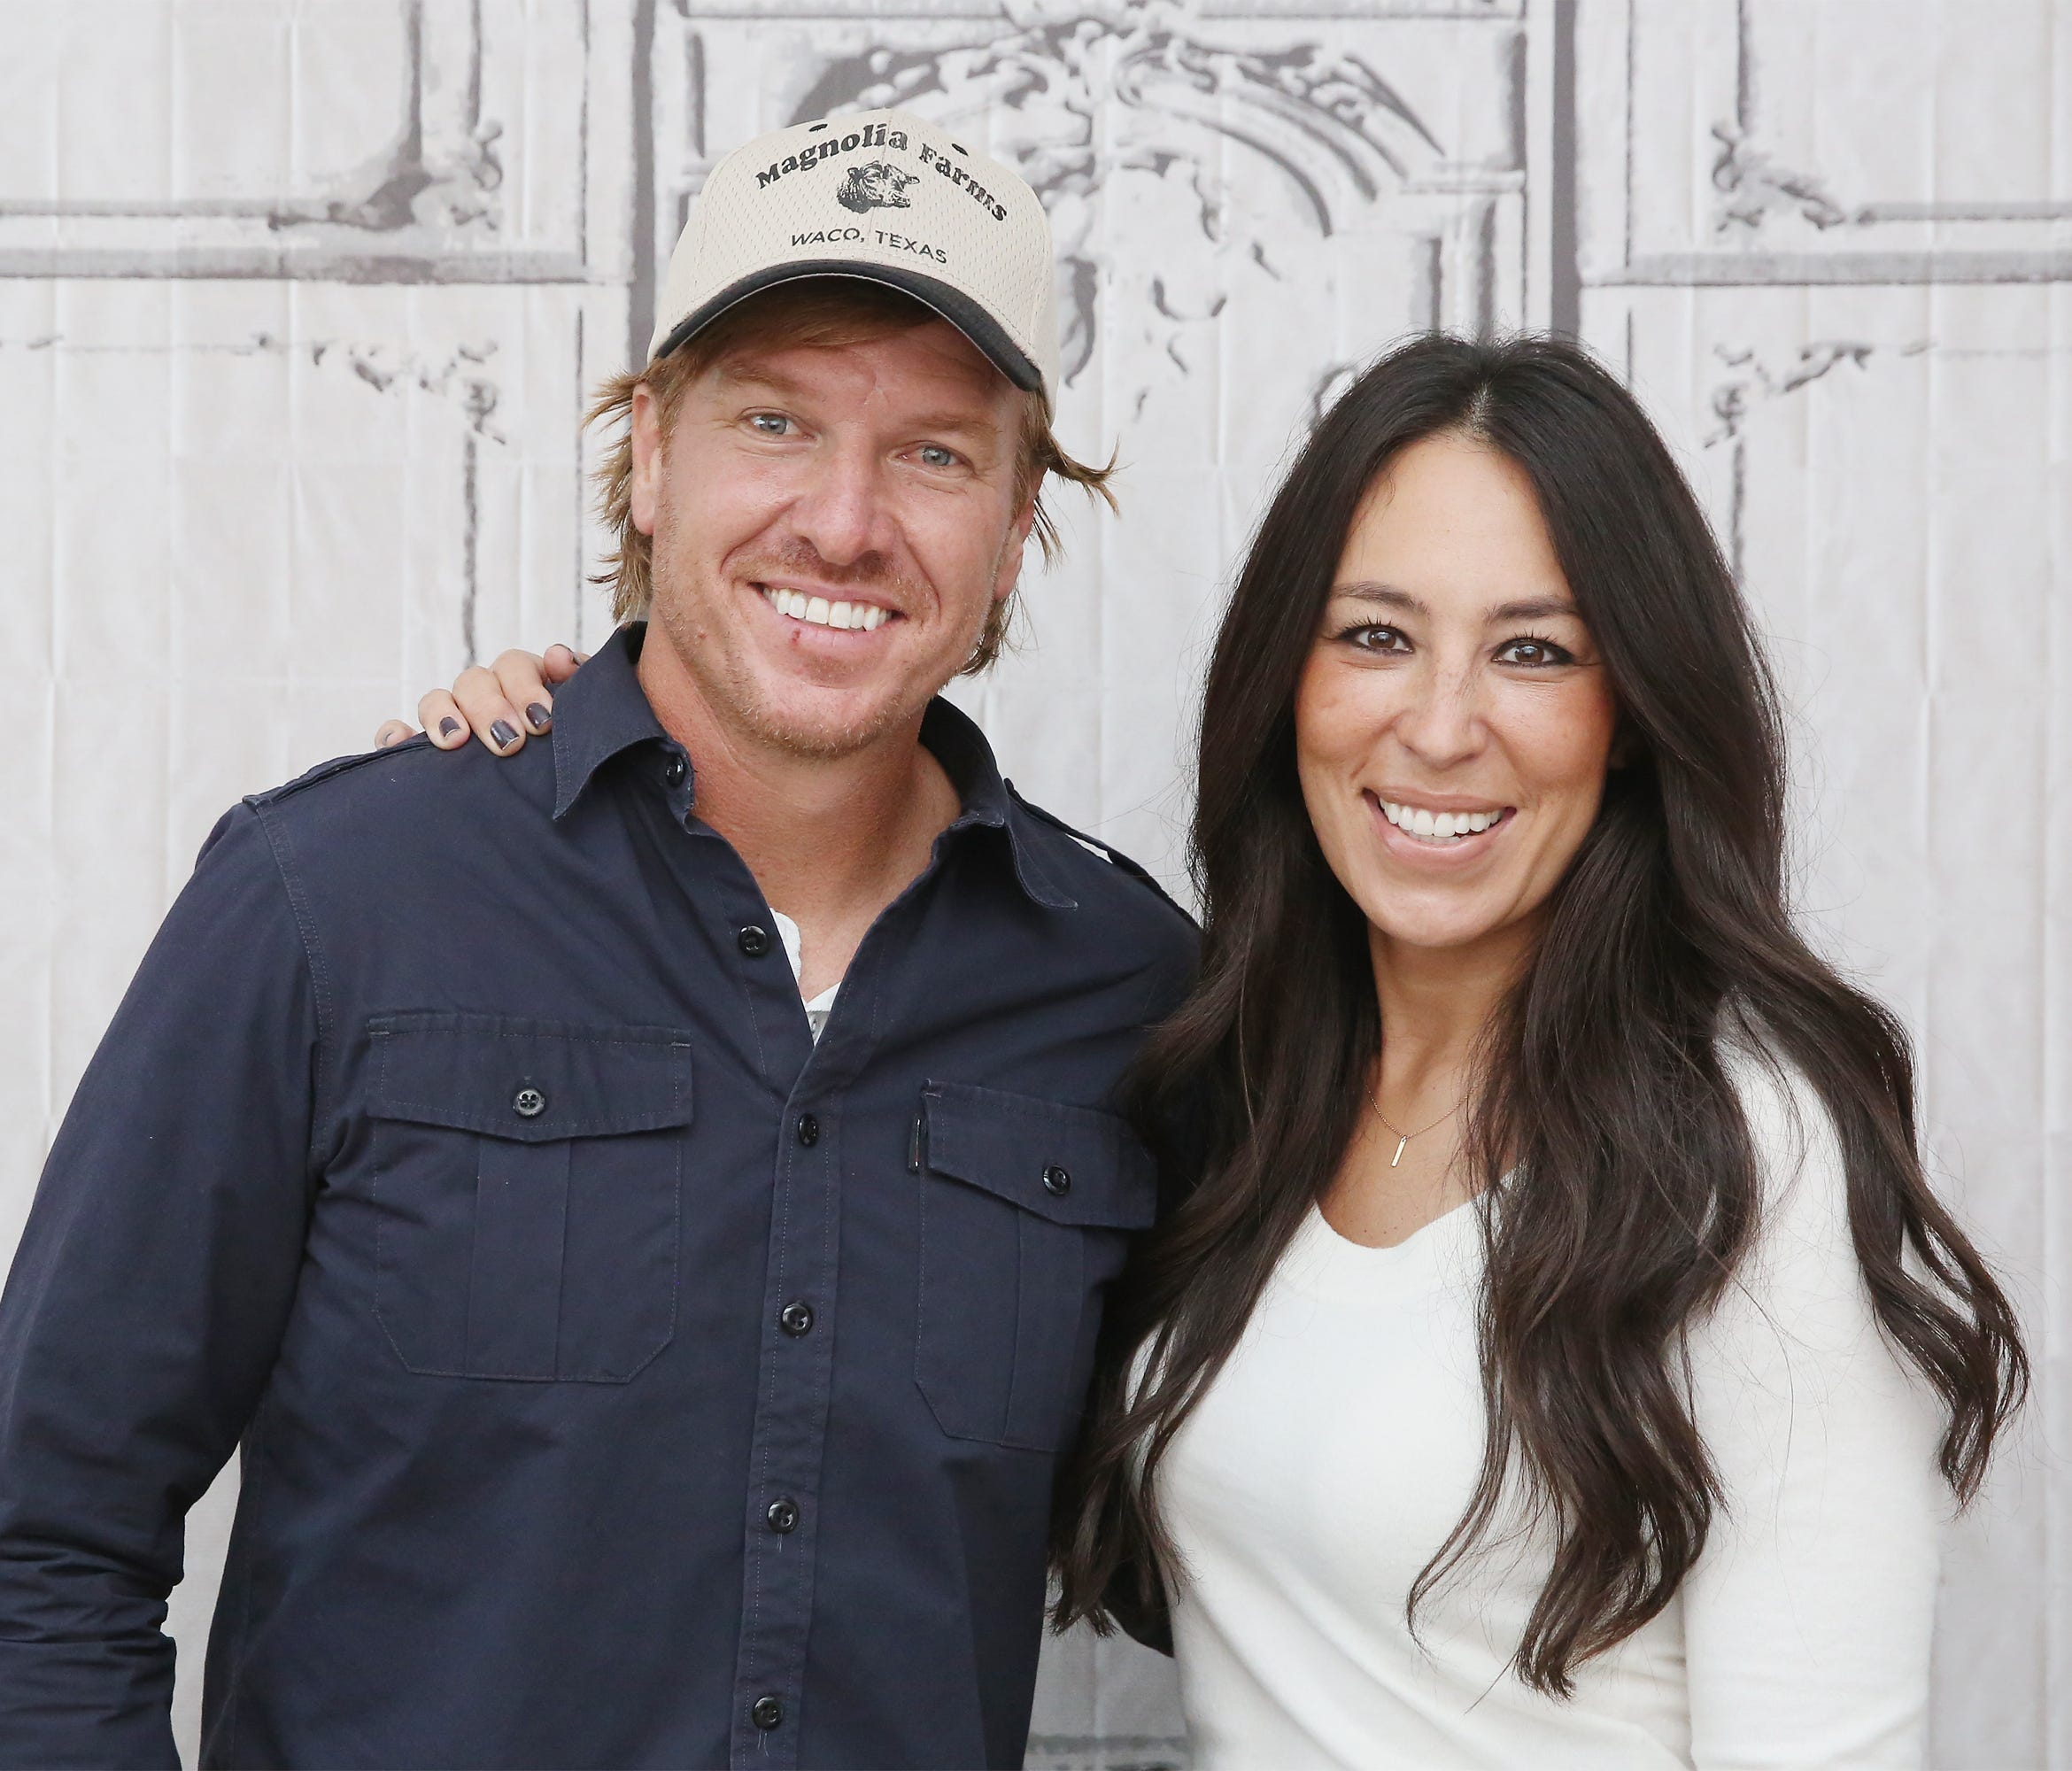 Chip Gaines and Joanna Gaines co-hosted Fixer Upper